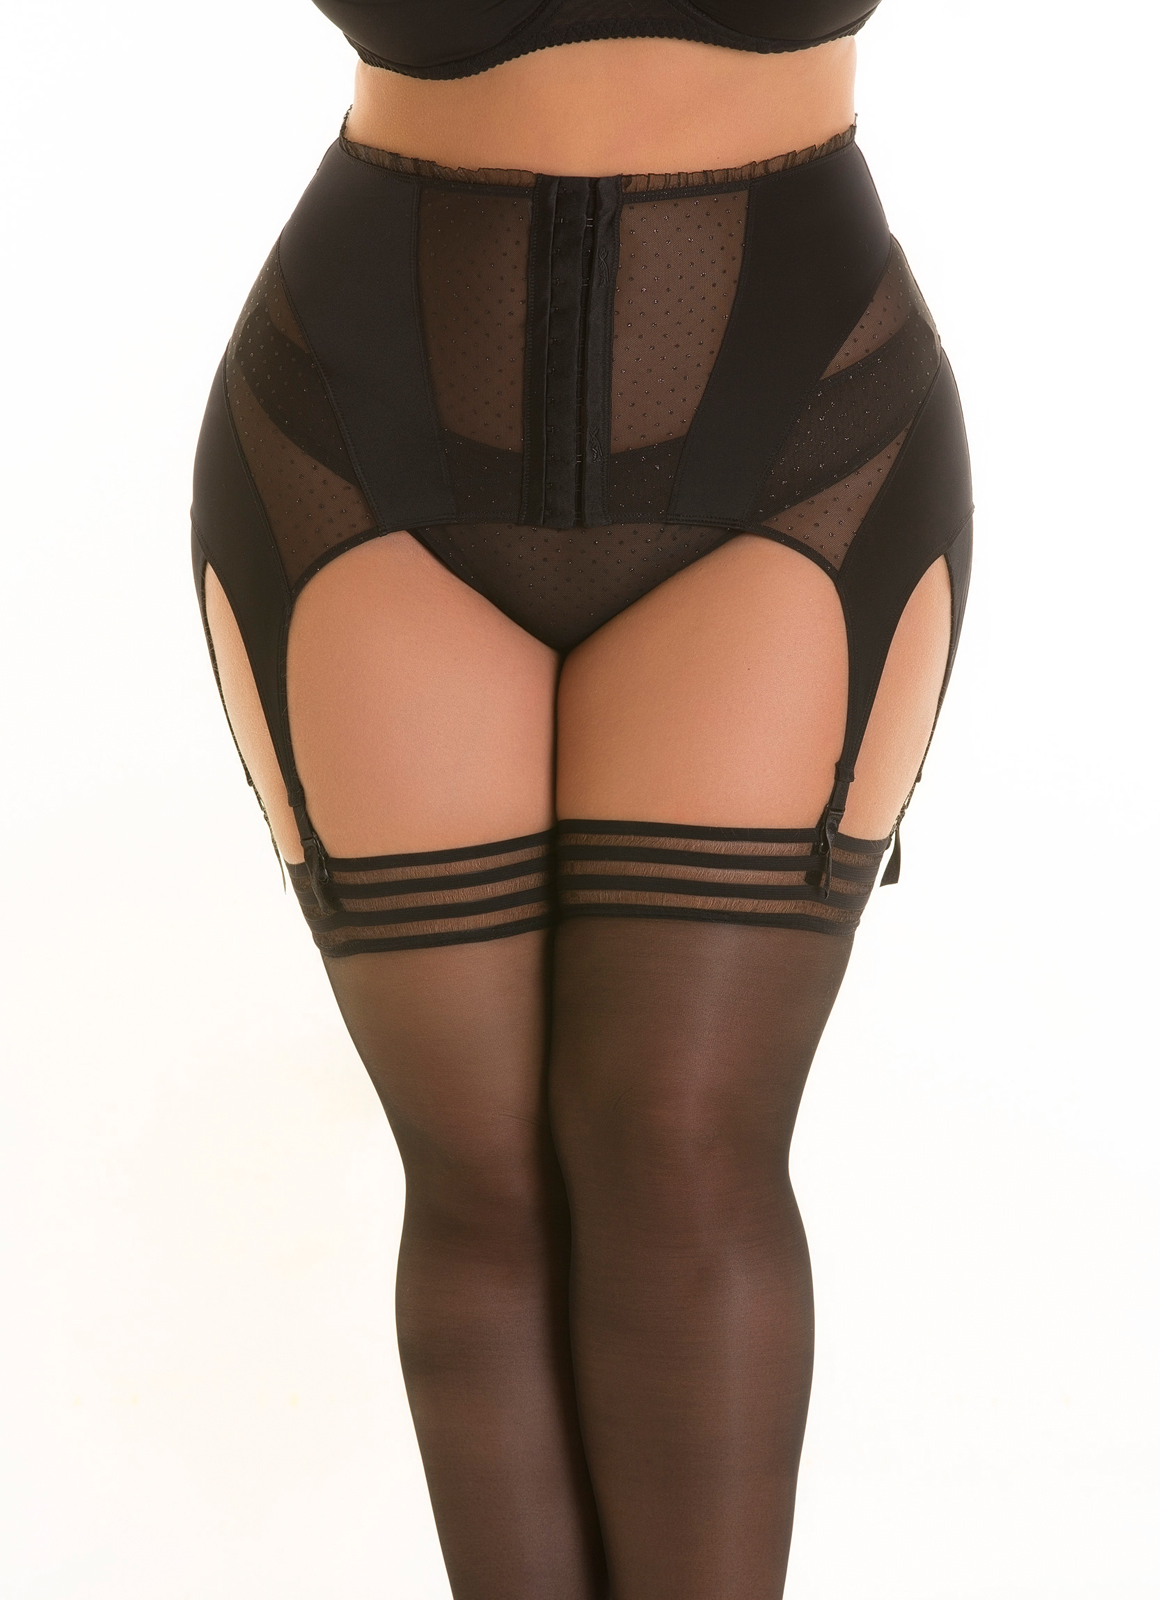 Pas do pończoch/Garter belt V-8822PS PLUS SIZE